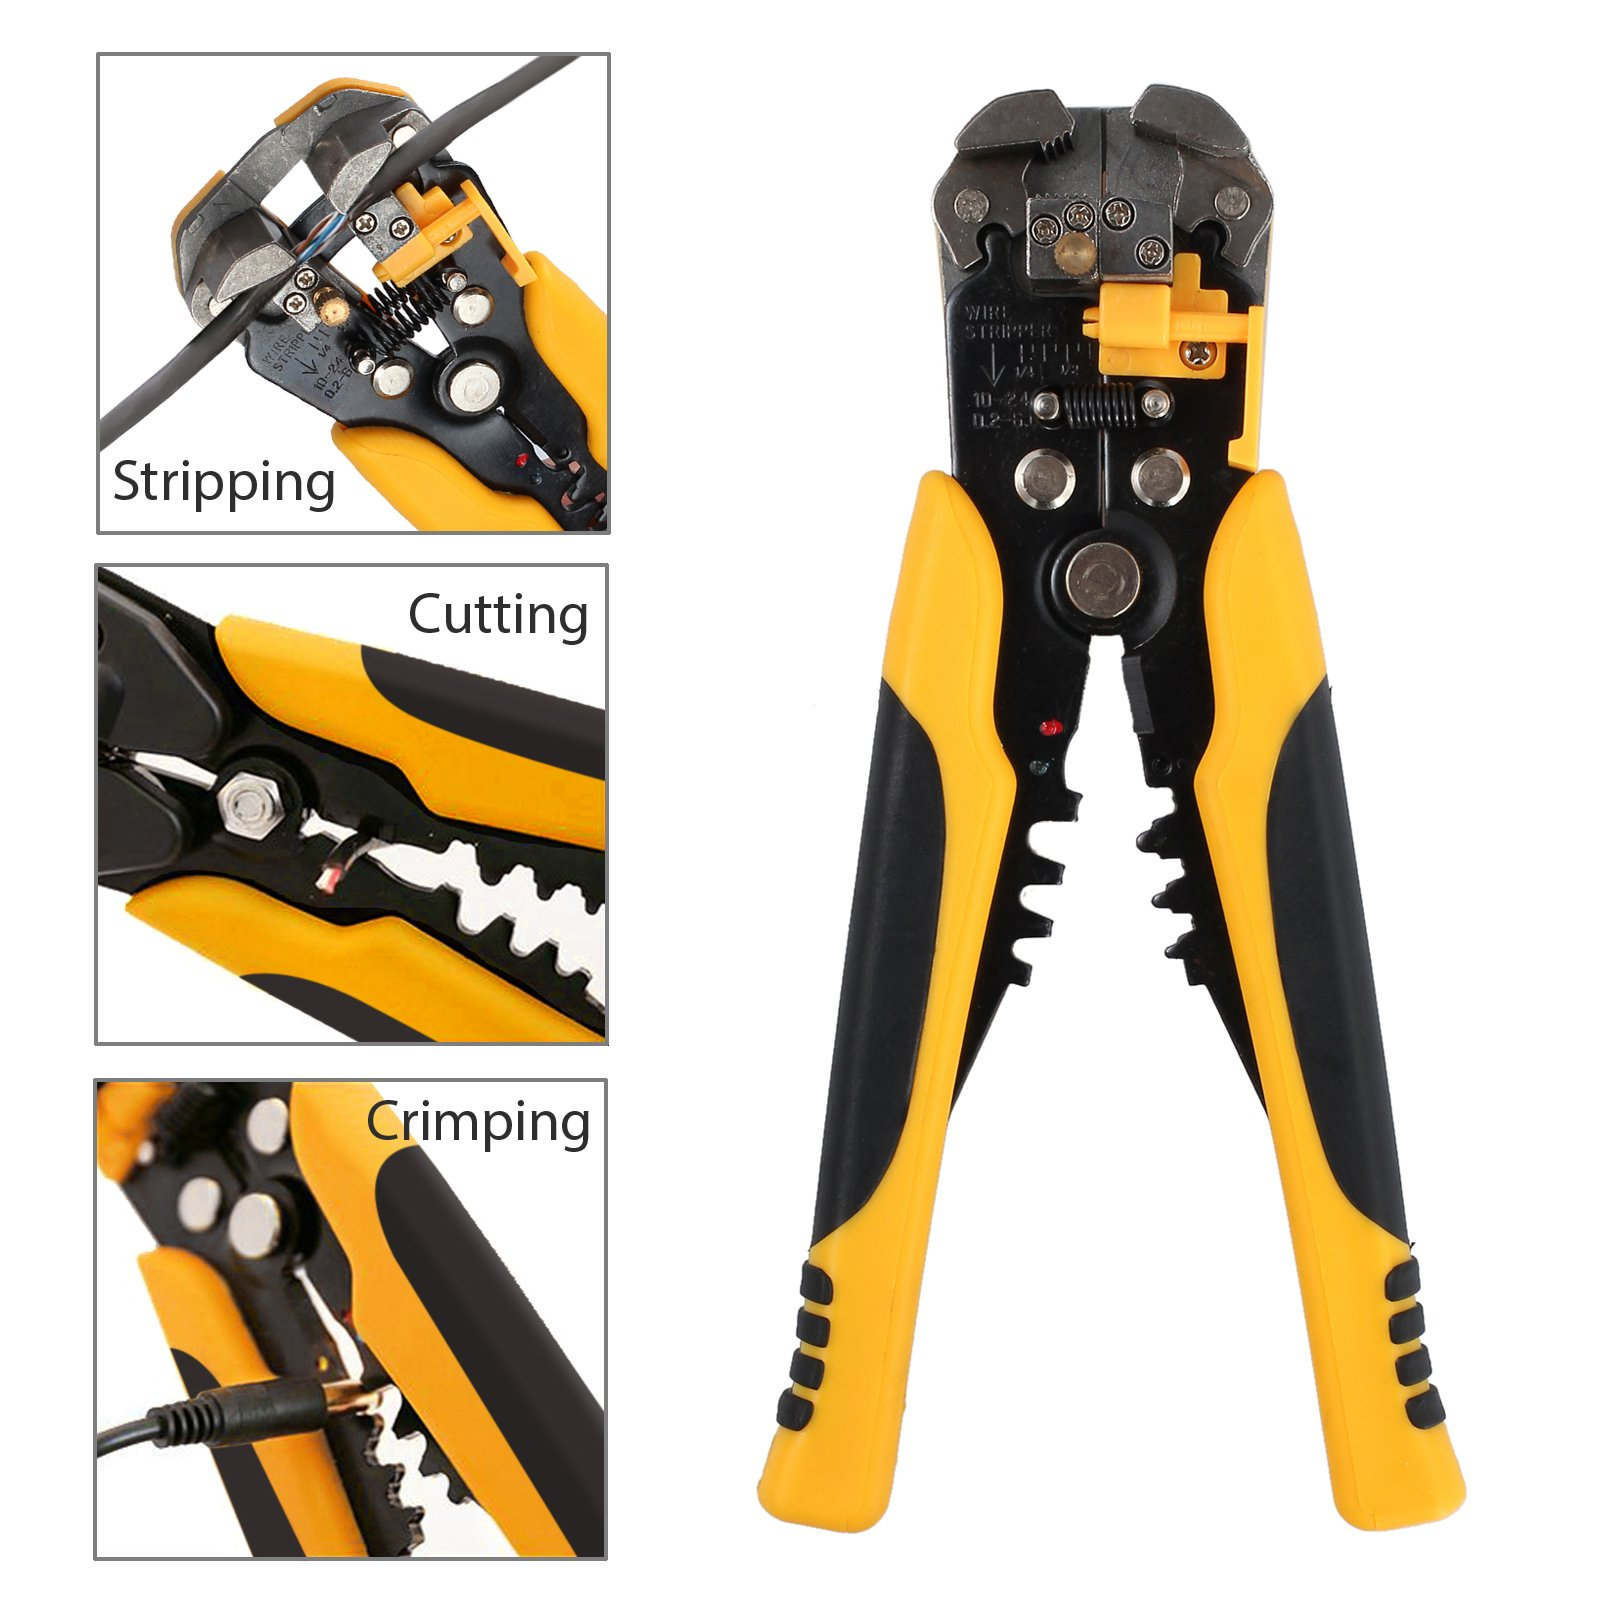 Proxima Direct Cable Crimper Wire Stripping Plier Tool Set Automatic Wire Stripper Crimper Cutter Cable Stripping Cutting Crimping Multifunctional Pliers 0.2-6 mm ² by Proxima Direct (Image #3)